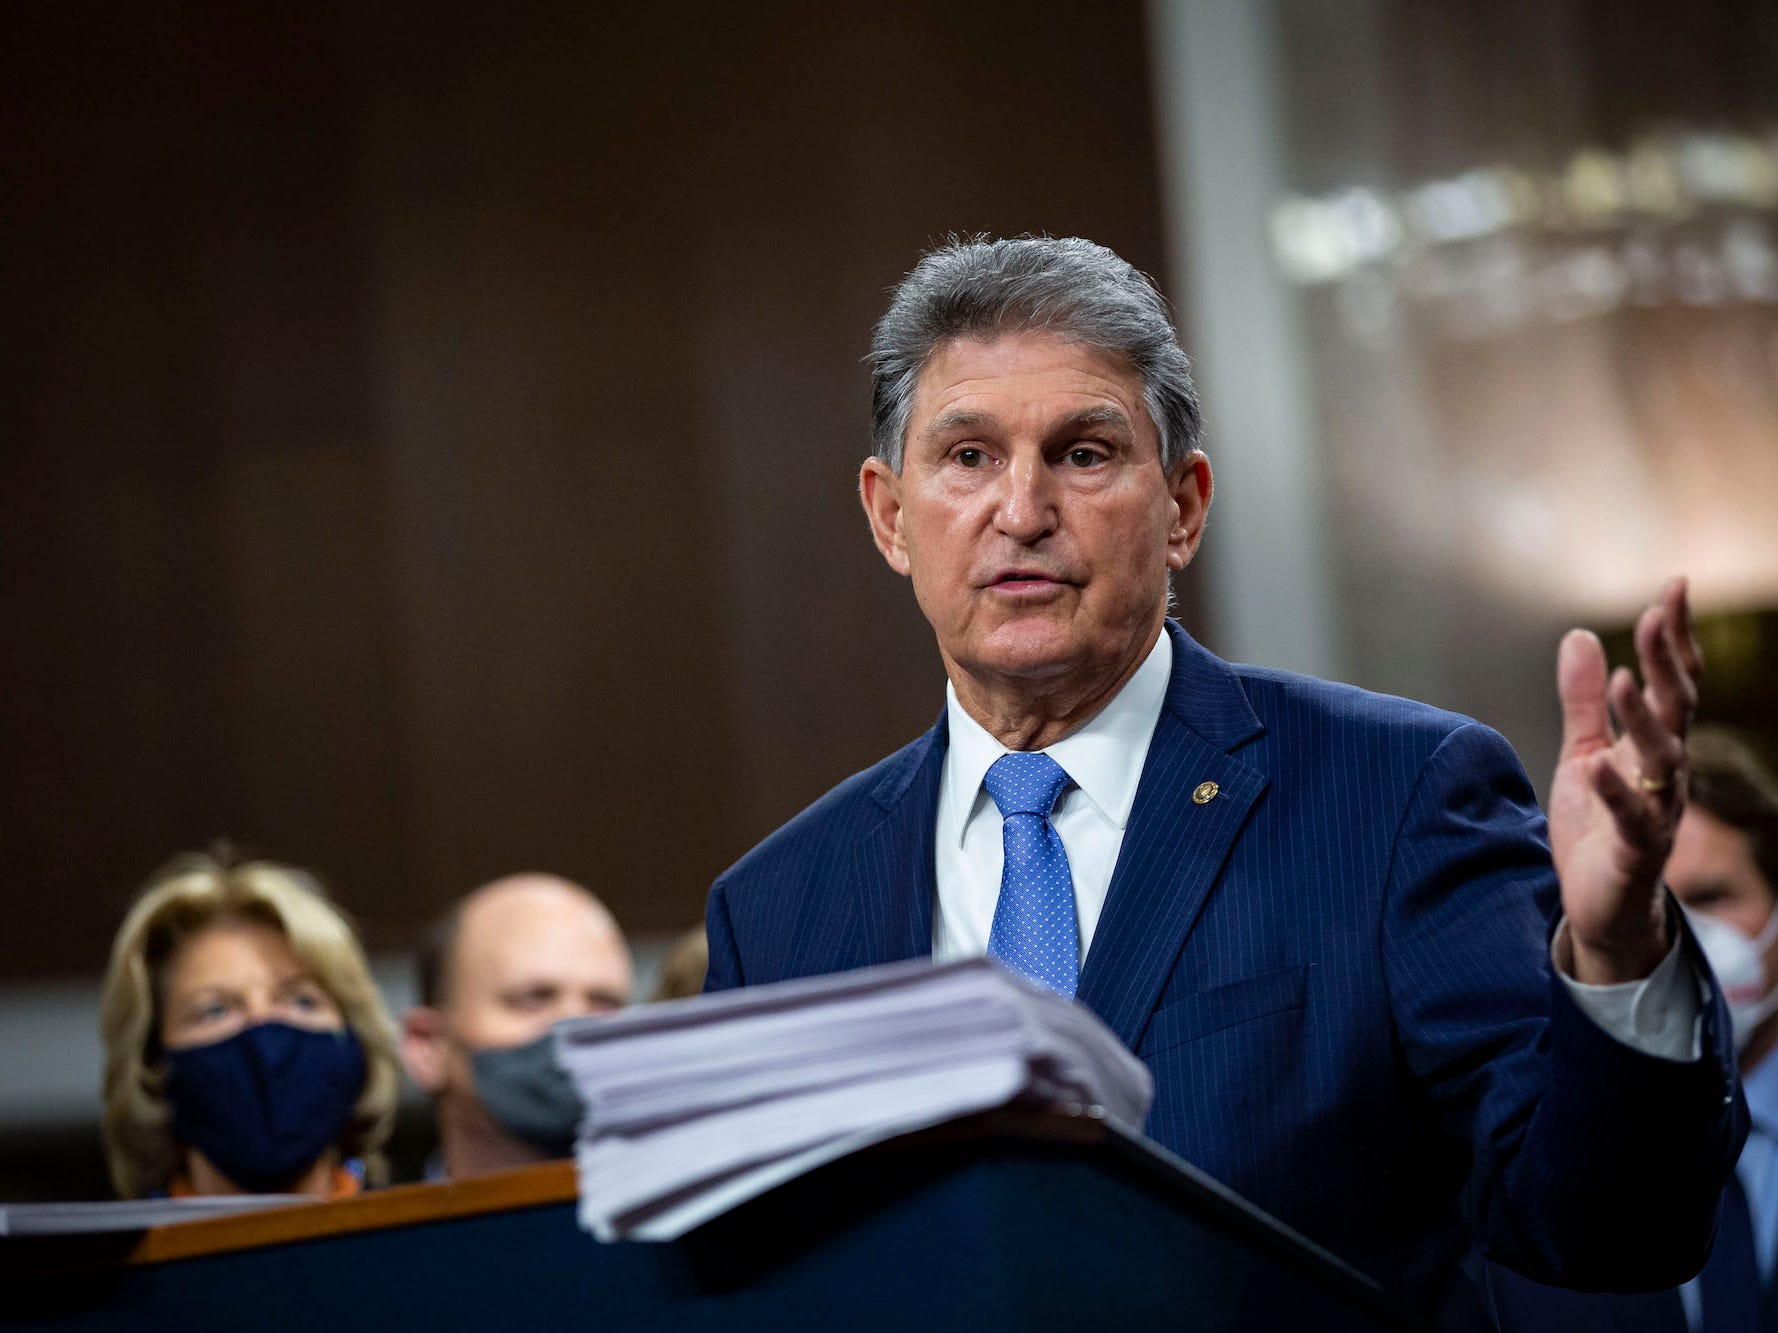 Joe Manchin poses a threat to raising the minimum wage, even though 250,000 West Virginians would to find pleasure from the amplify